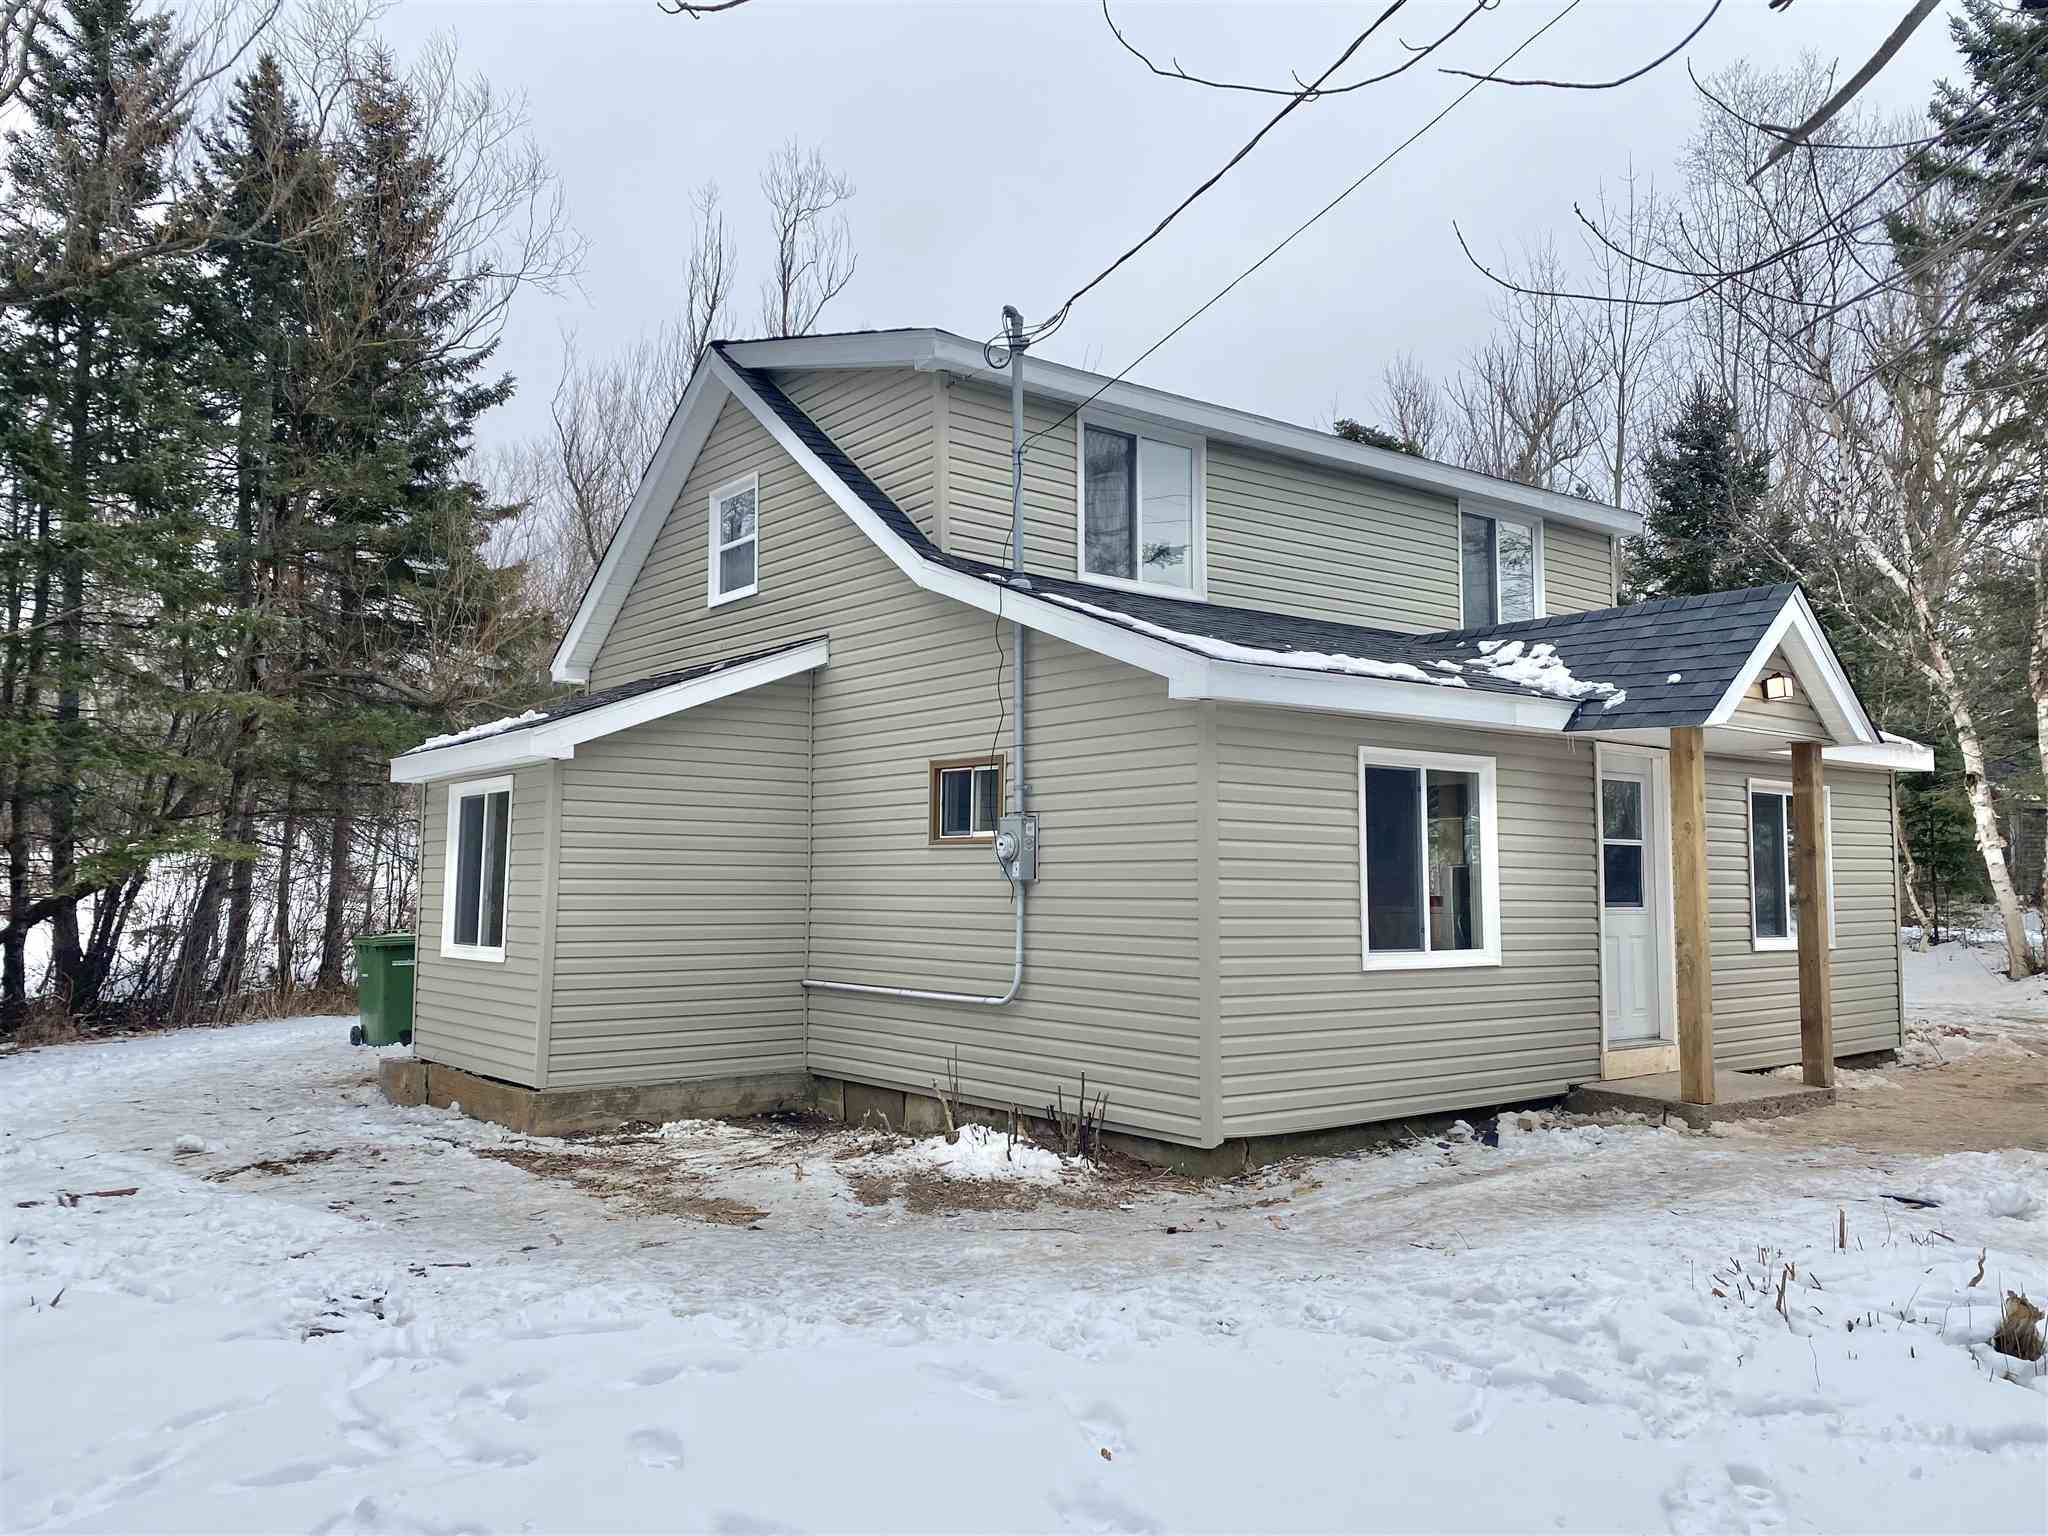 Main Photo: 12657 Highway 1 in Avonport: 404-Kings County Residential for sale (Annapolis Valley)  : MLS®# 202101702